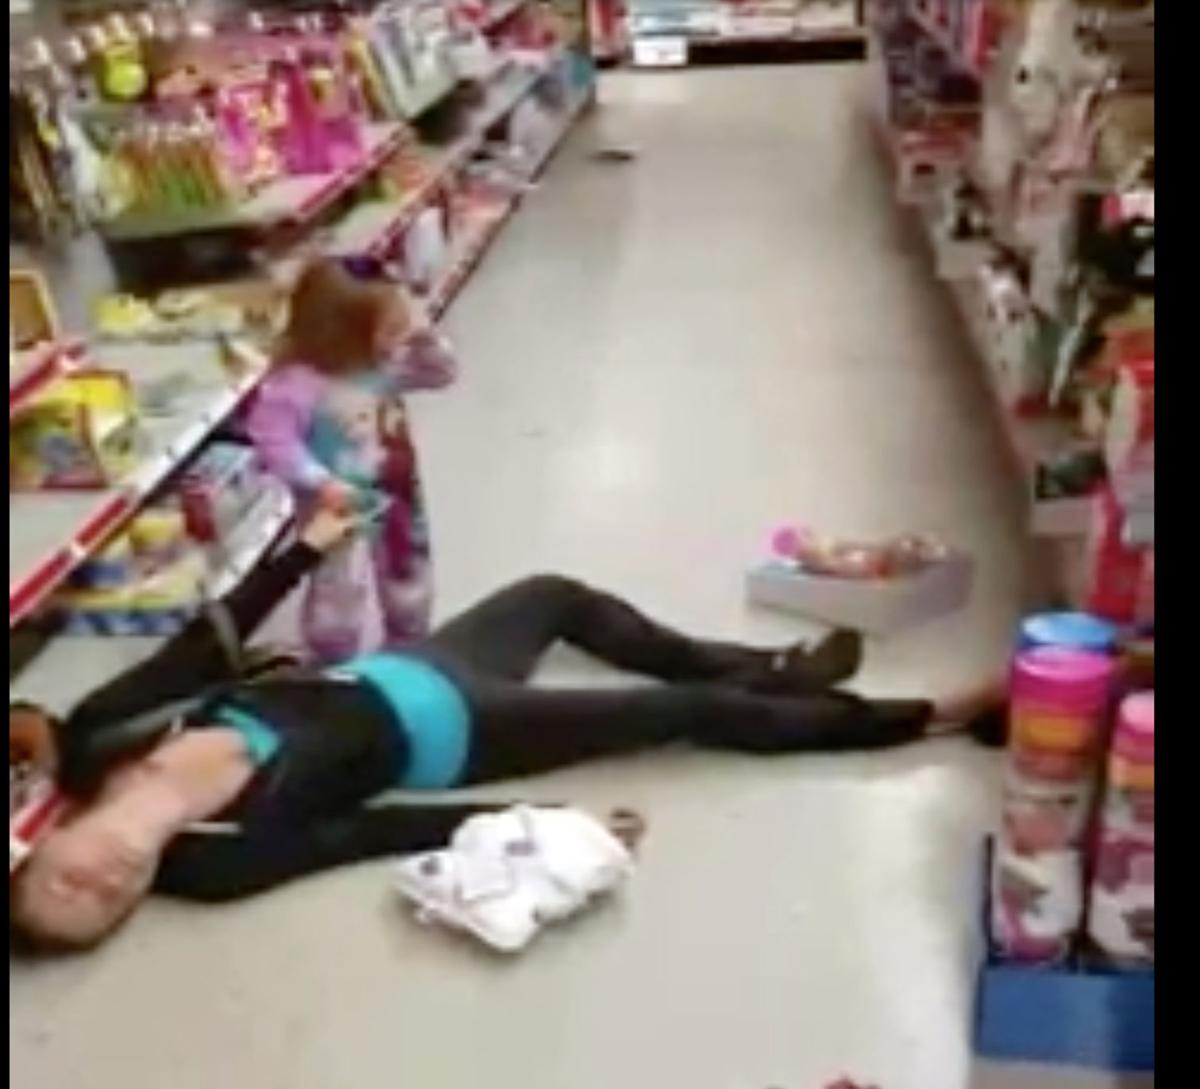 A Tot S Anguish Video Captures Mom S Apparent Overdose At